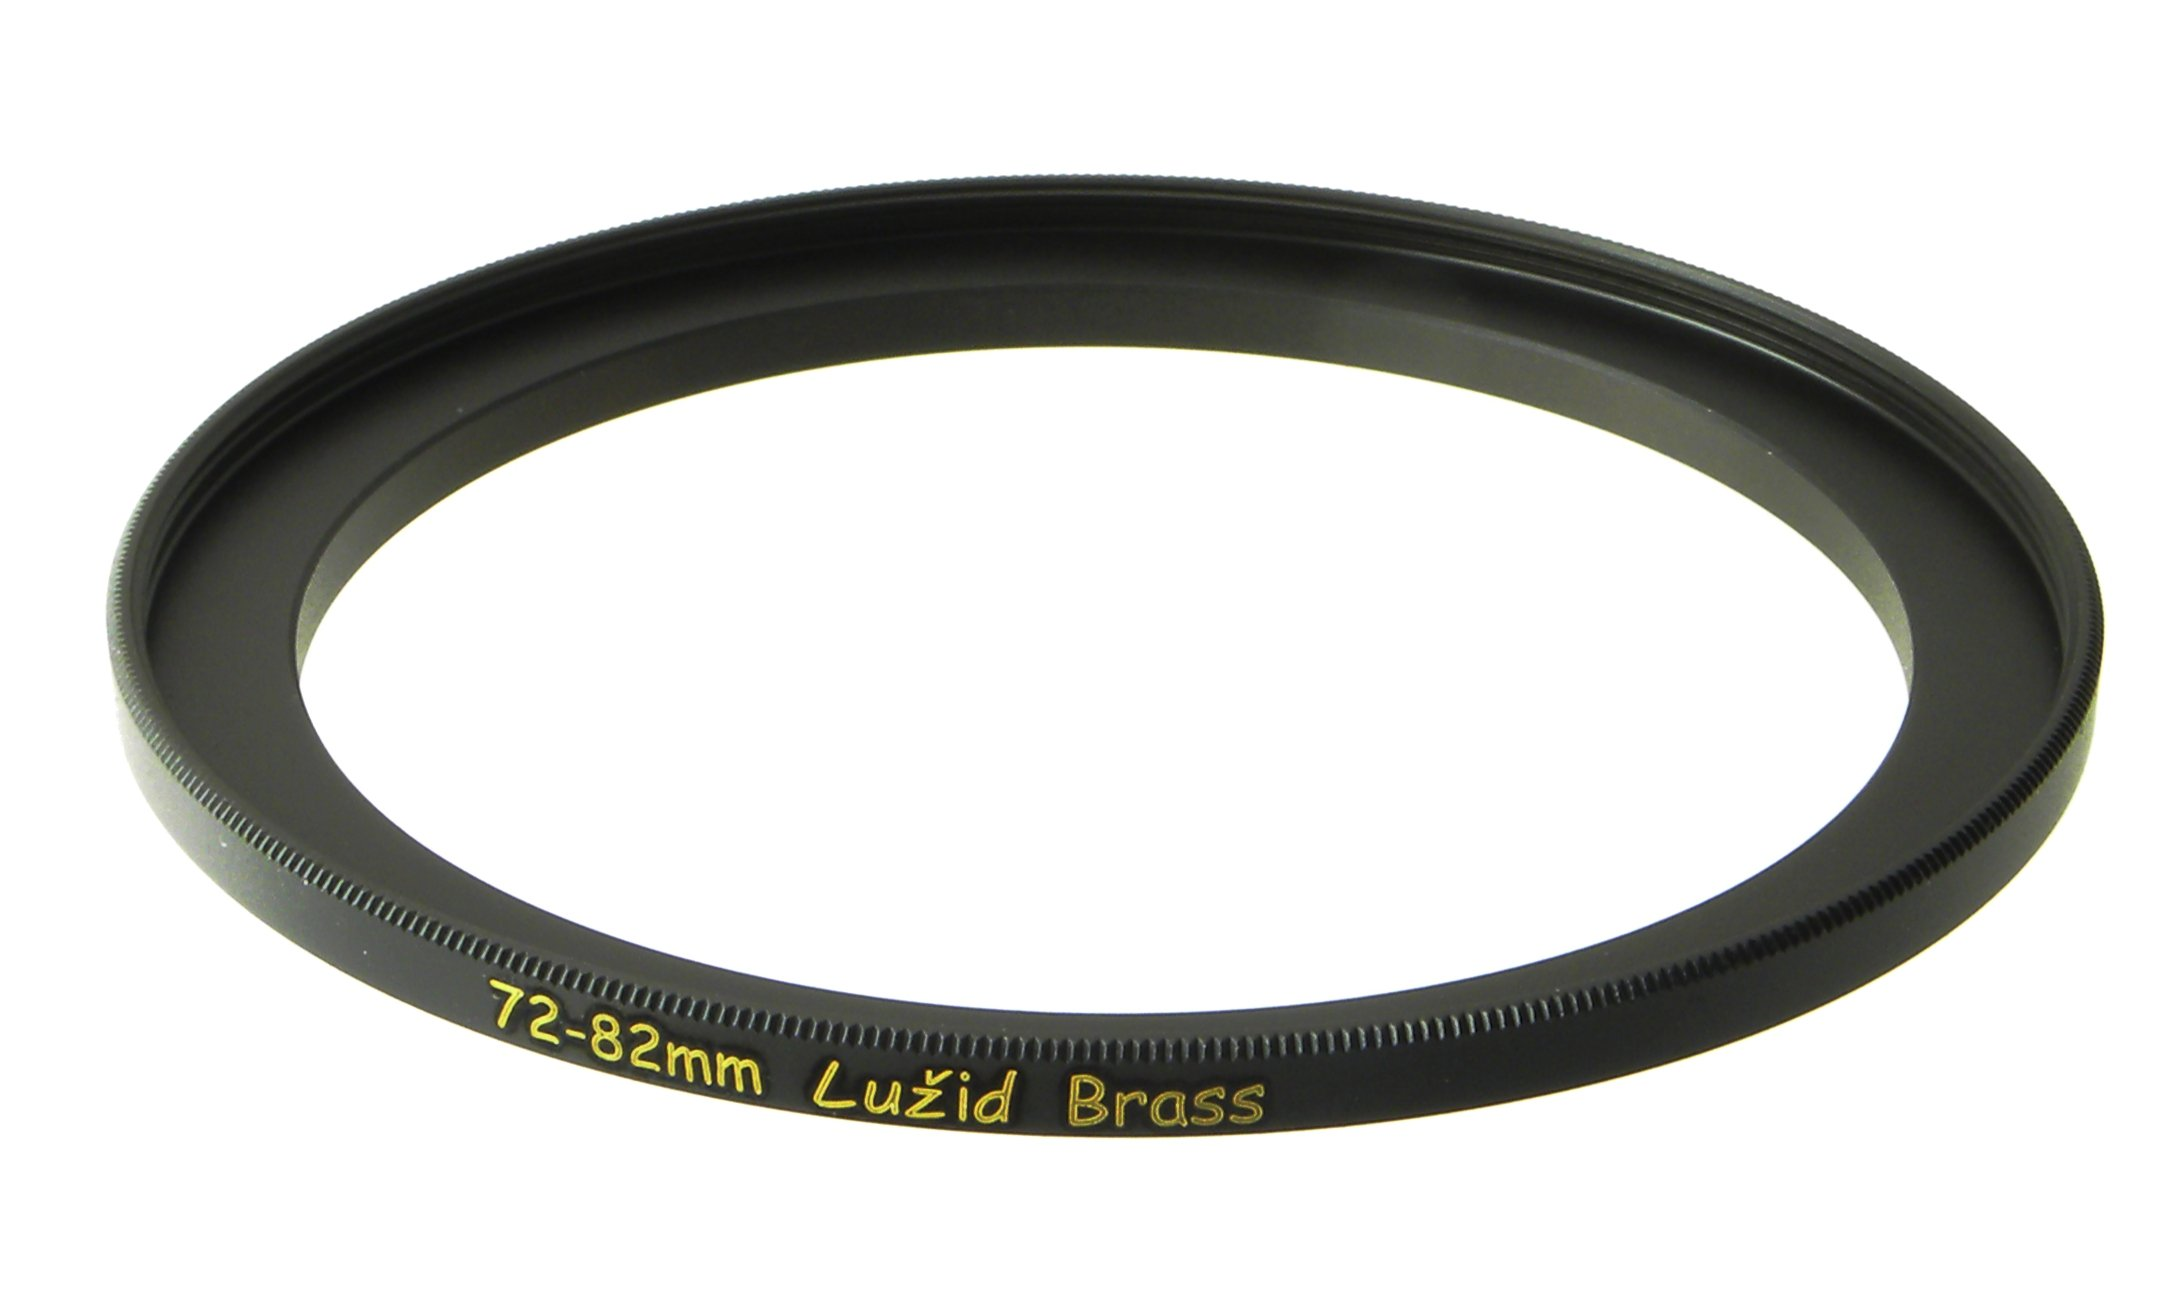 LUŽID Brass 72mm to 82mm Step Up Filter Ring Adapter 72 82 Luzid by LUŽID